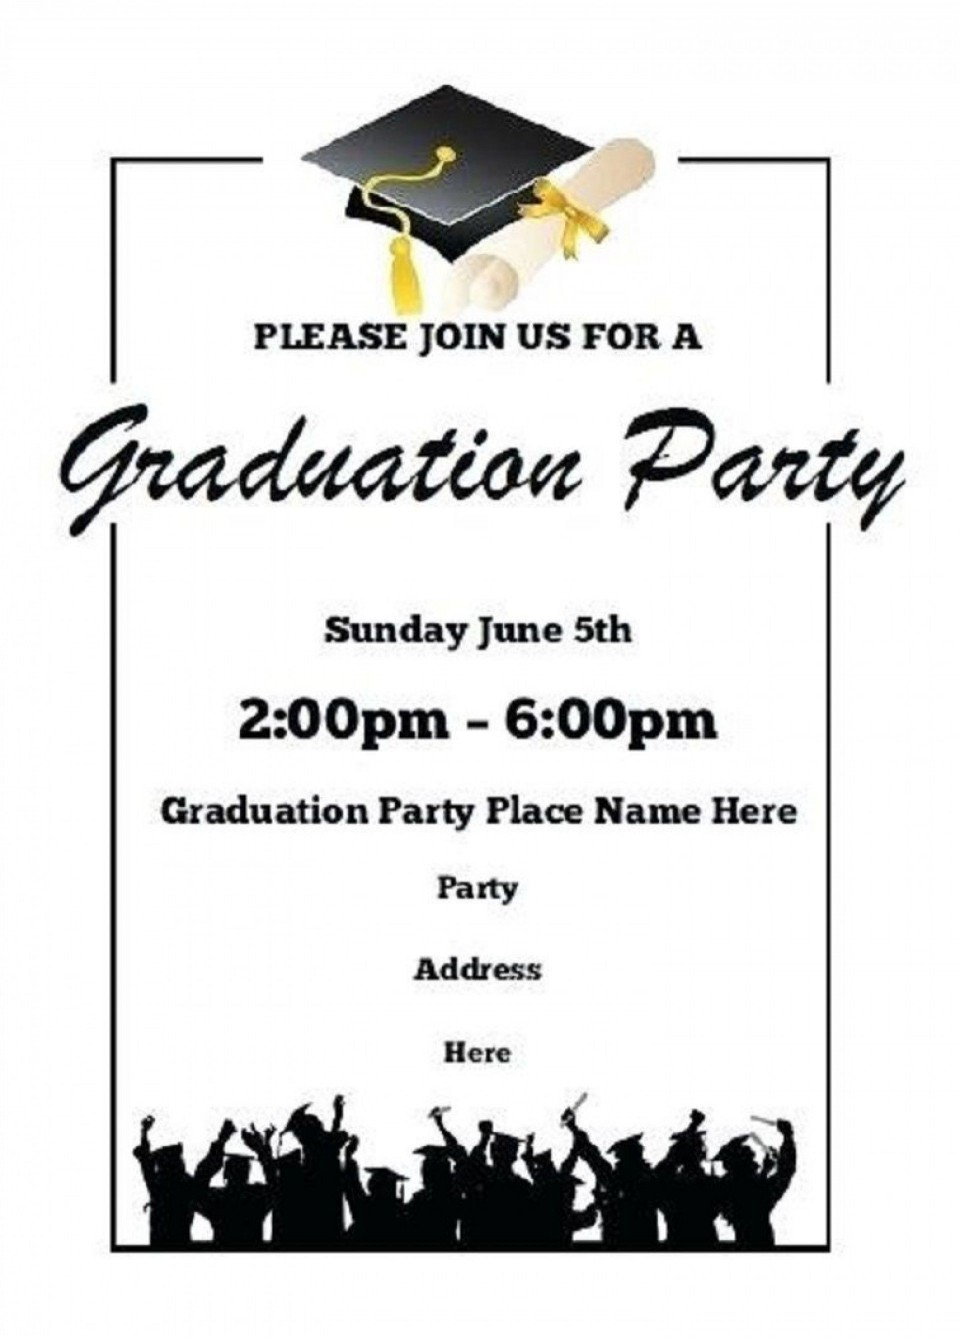 002 Singular Free Printable Graduation Invitation Template High Resolution  Party For Word960